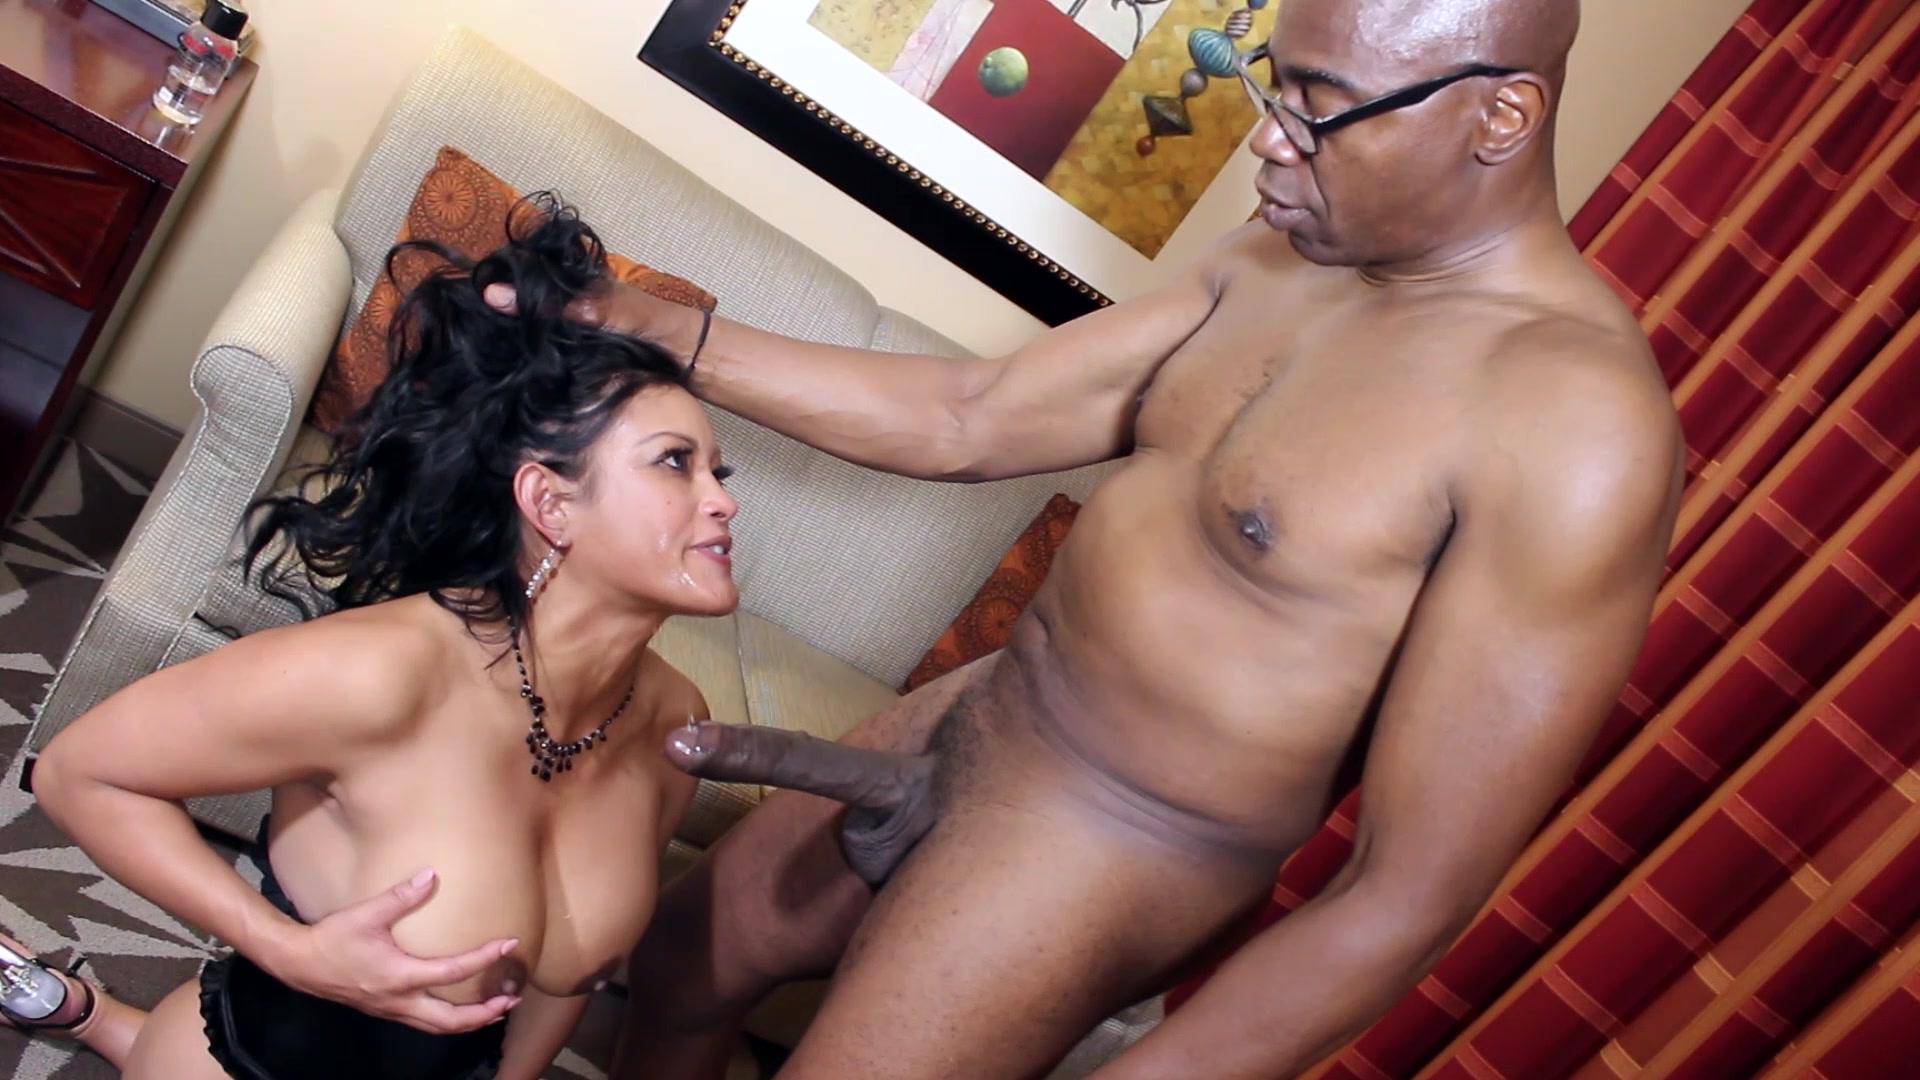 Trained For Big Black Cock Videos On Demand  Adult Dvd Empire-6548